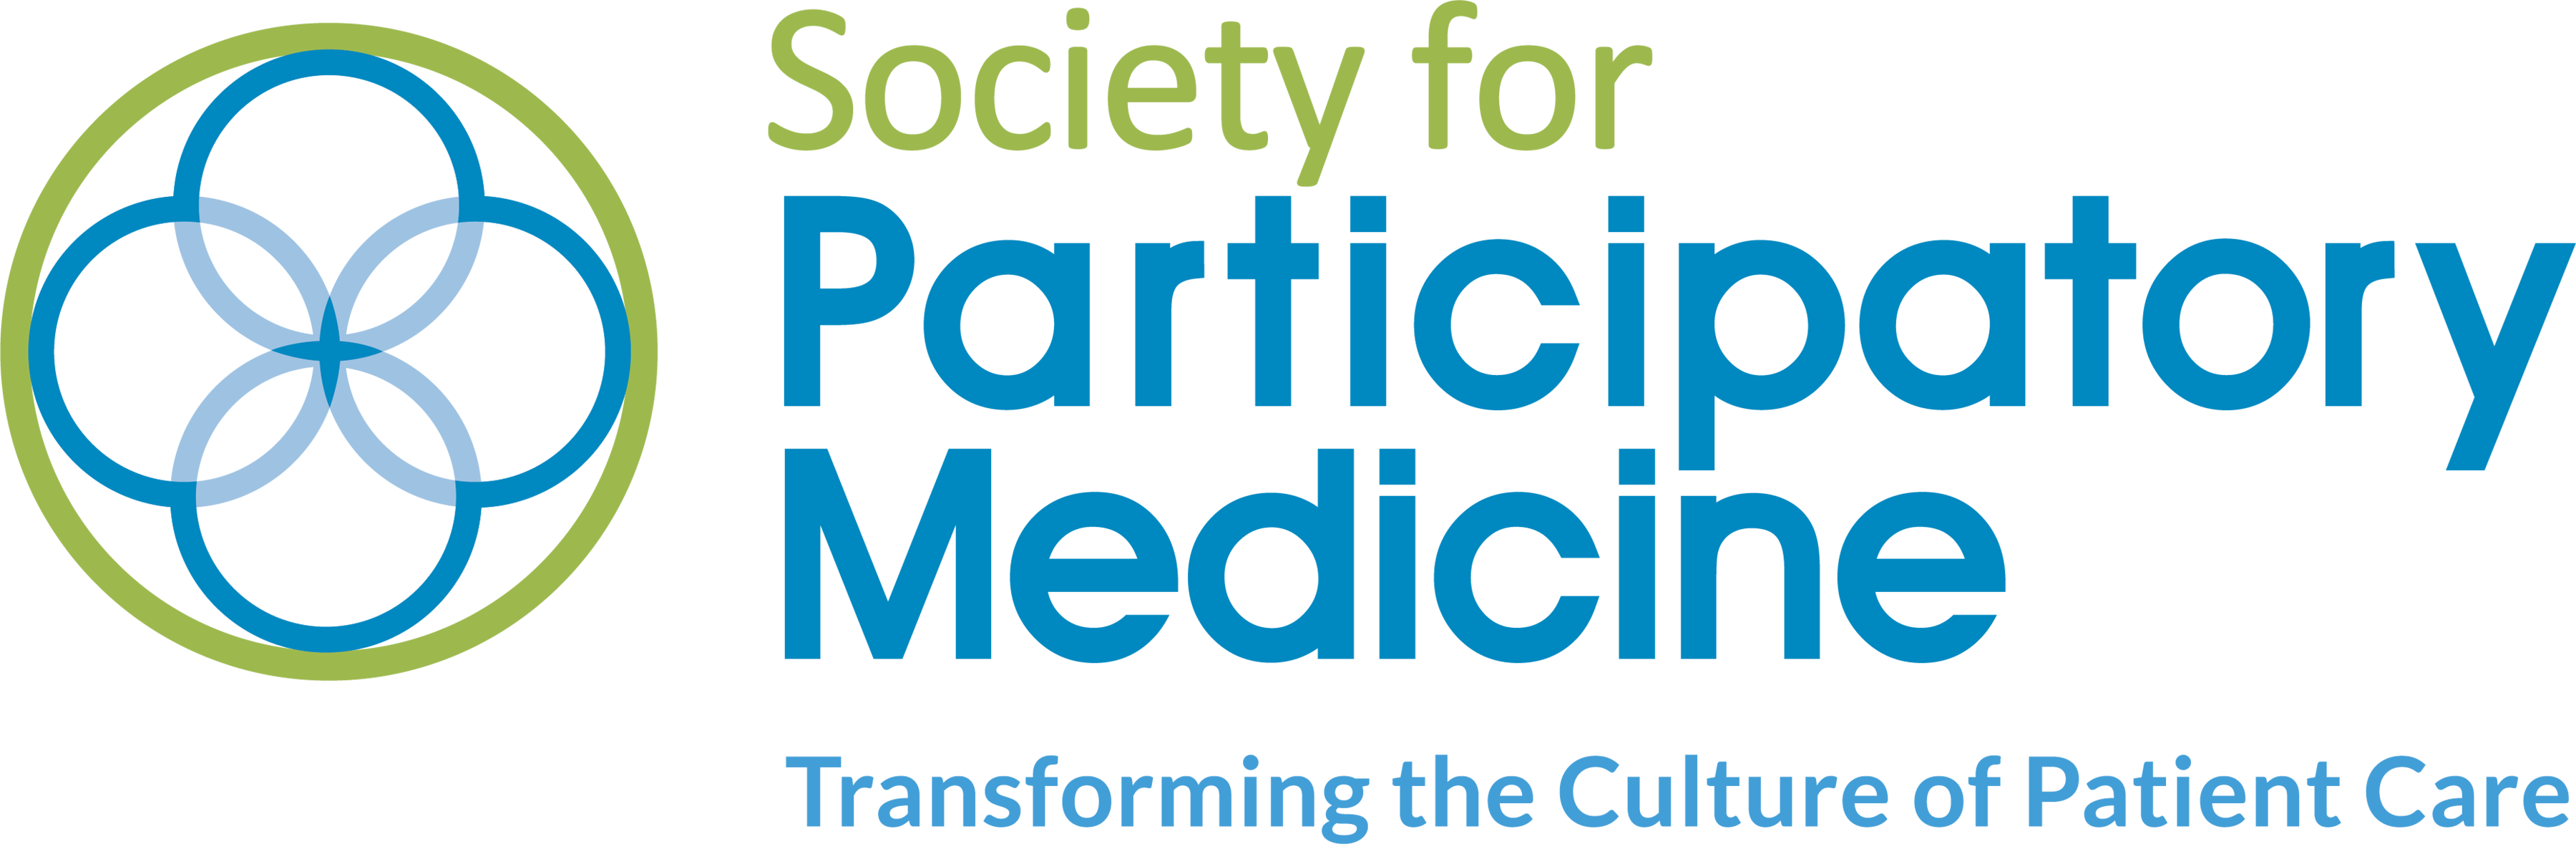 The Society for Participatory Medicine